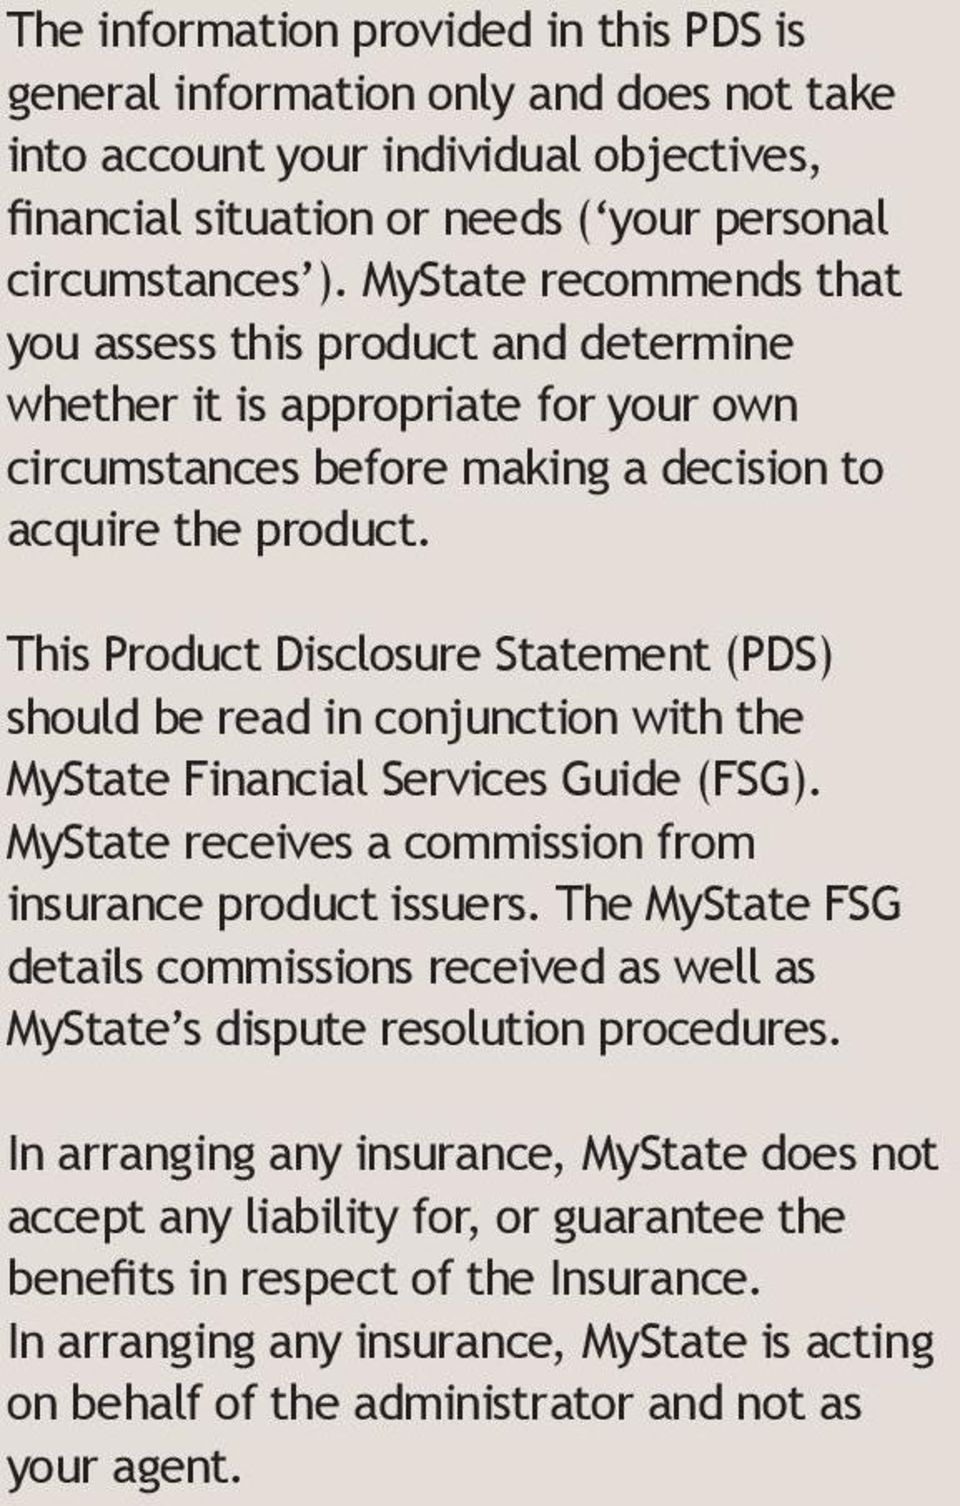 This Product Disclosure Statement (PDS) should be read in conjunction with the MyState Financial Services Guide (FSG). MyState receives a commission from insurance product issuers.